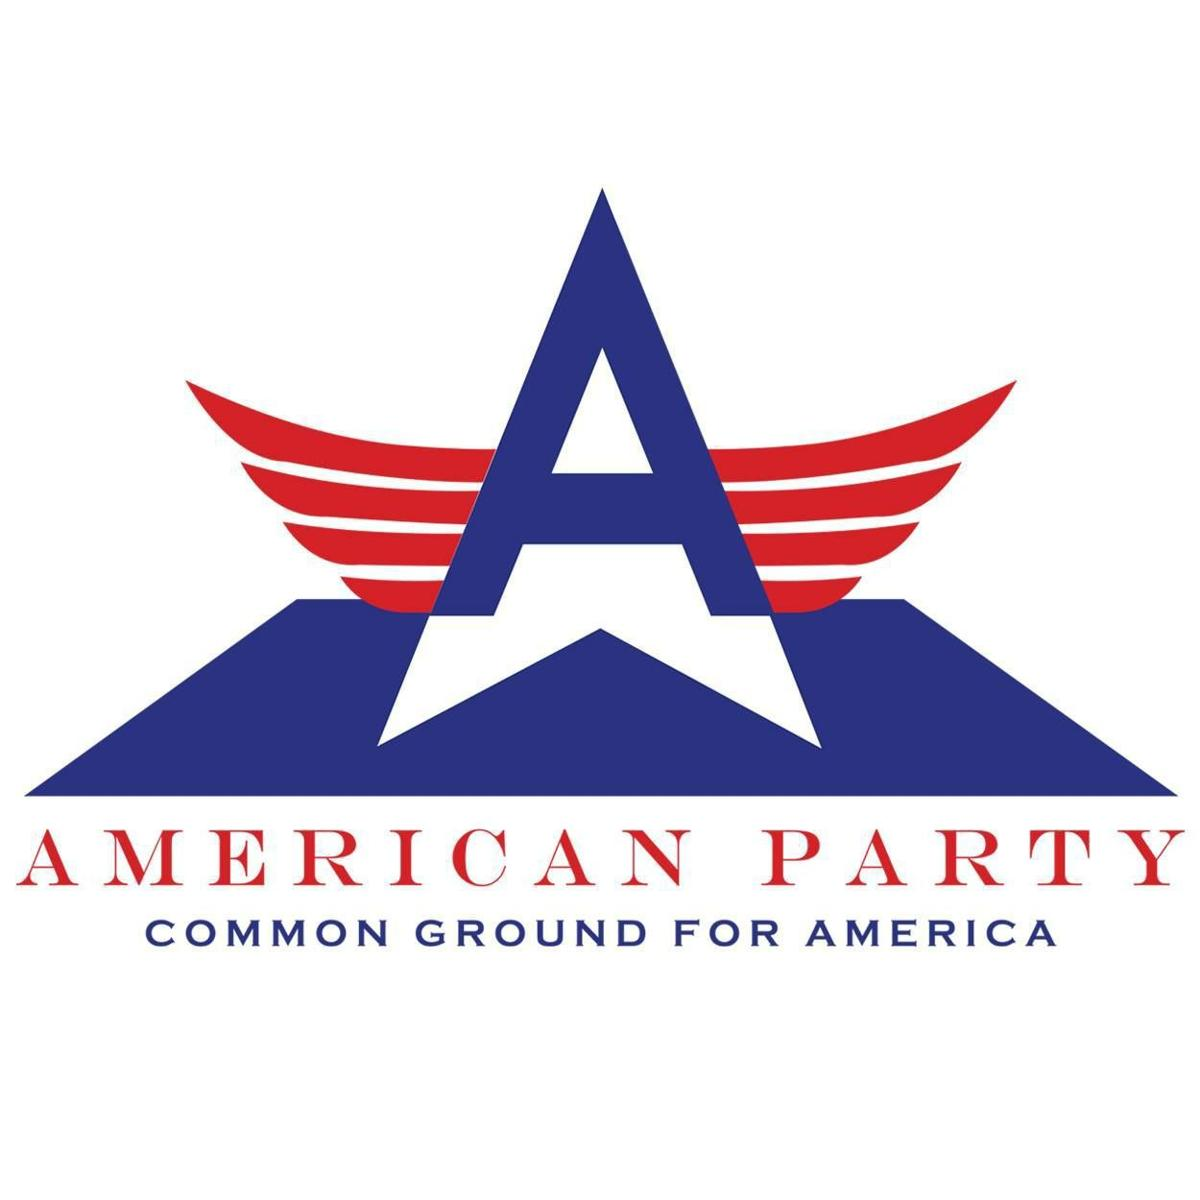 Join the party to help repair